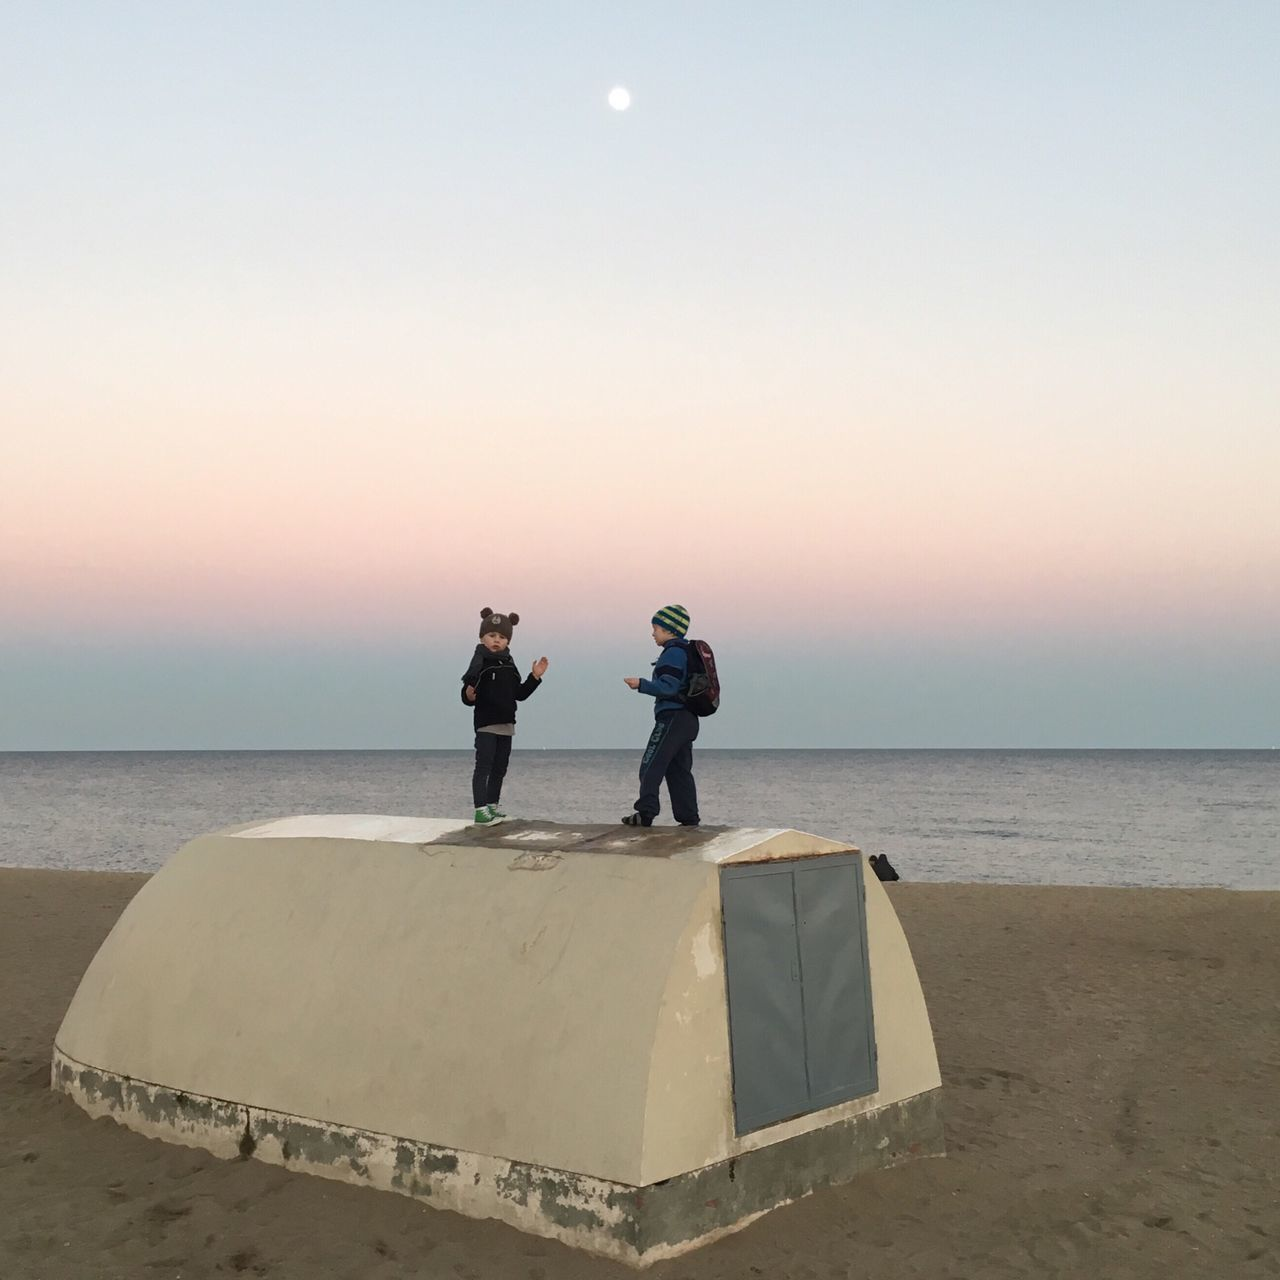 Beautiful stock photos of mond, two people, sea, horizon over water, rear view